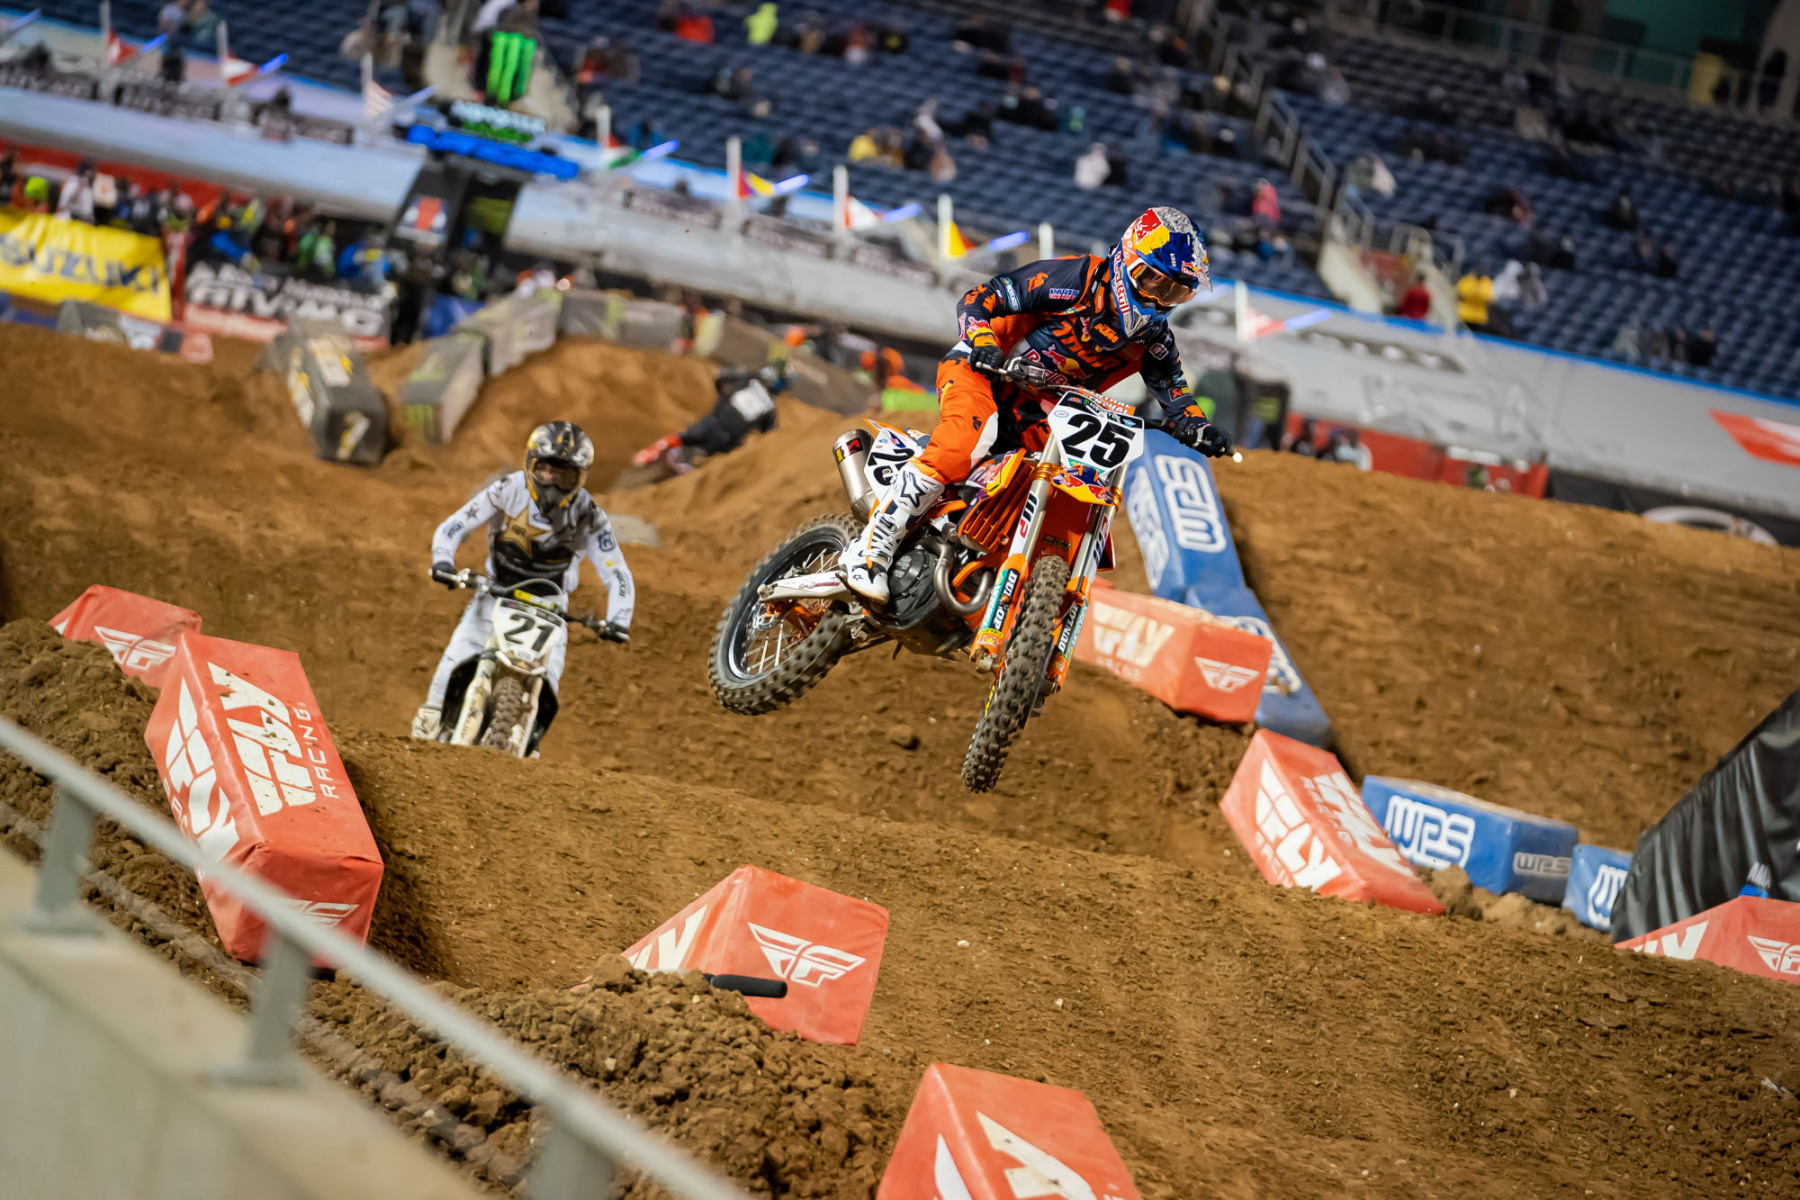 2021-ORLANDO-TWO-SUPERCROSS_KICKSTART_1538